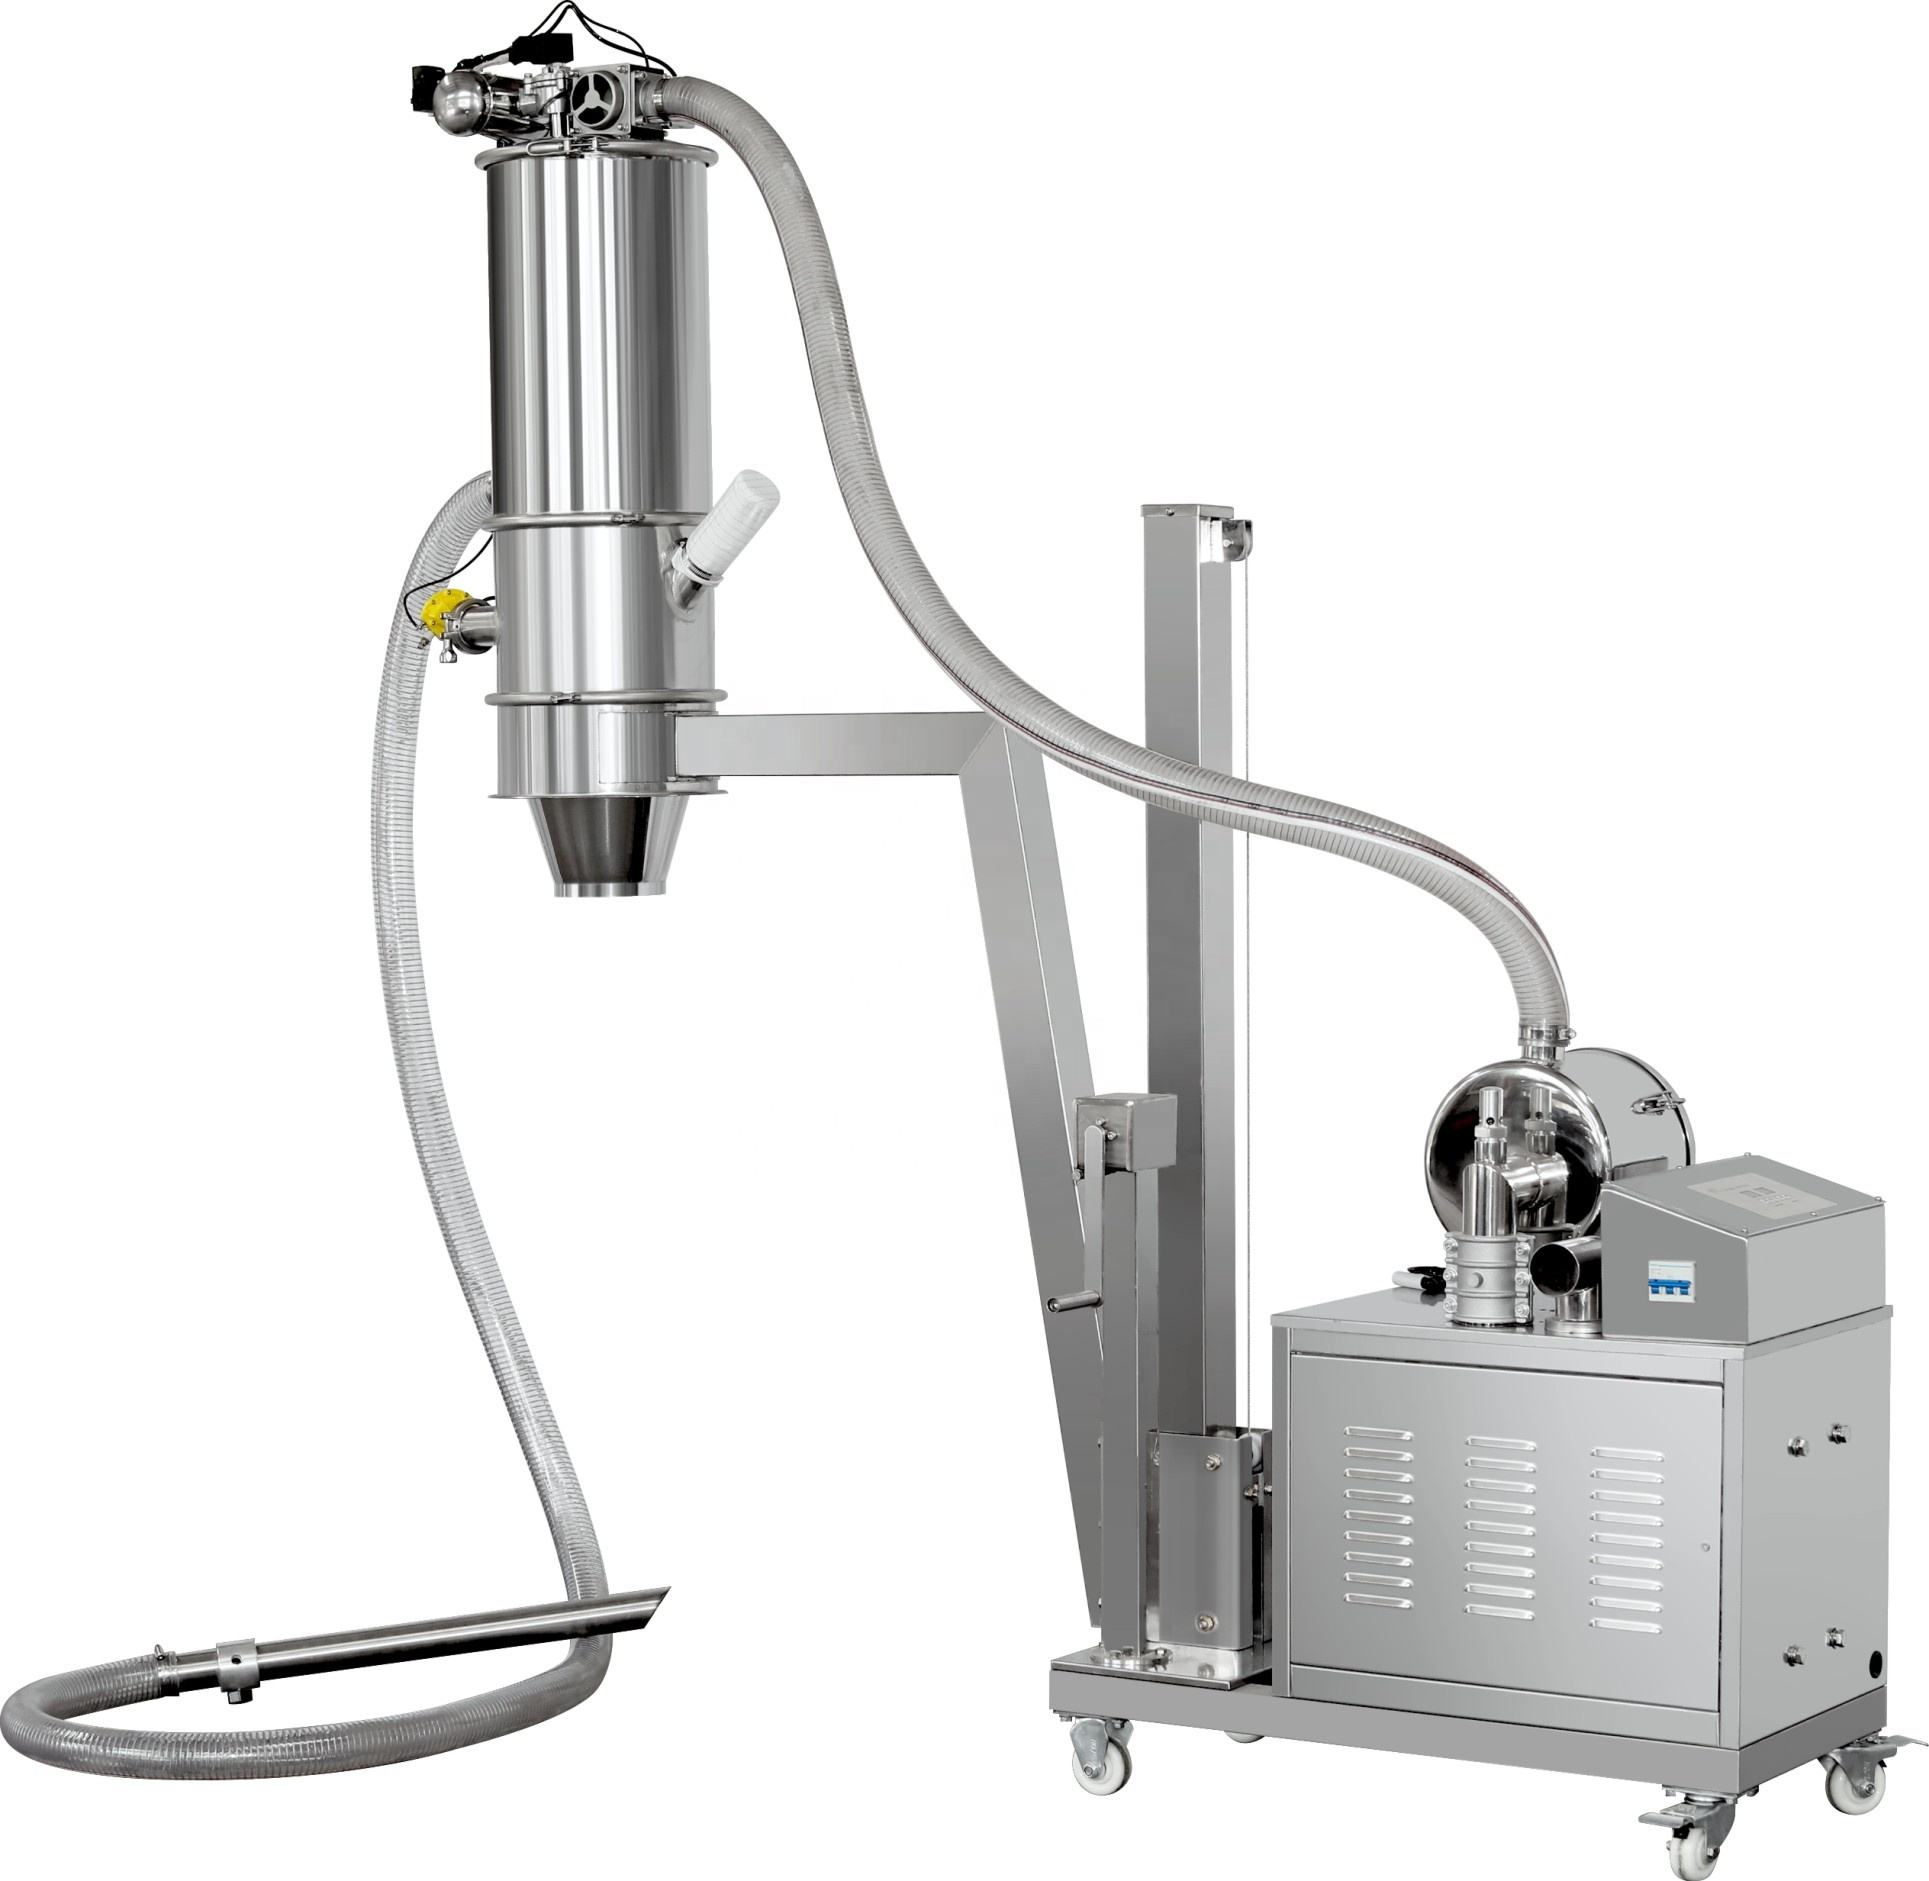 Yeast powder suction conveyor machine yam flour qvc feeder whole milk and granules vacuum